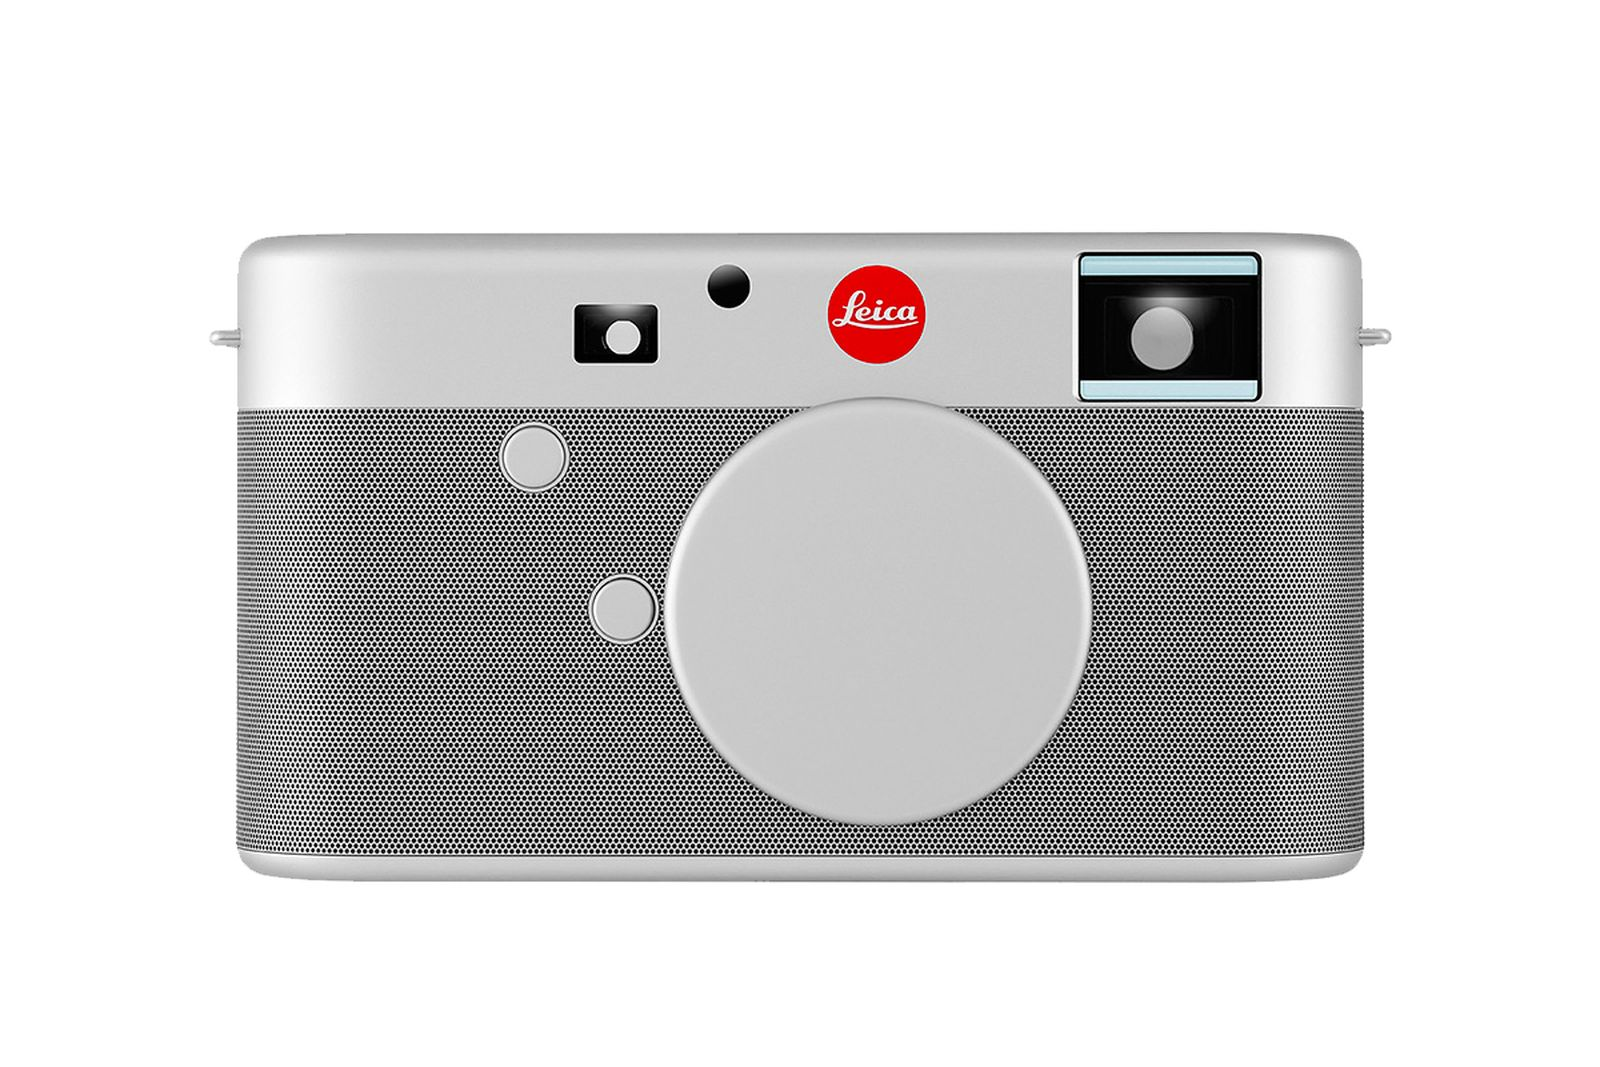 Jony Ive and Marc Newson's custom Leica camera, which sold for $1.8 million at a (Red) charity auction in 2013.